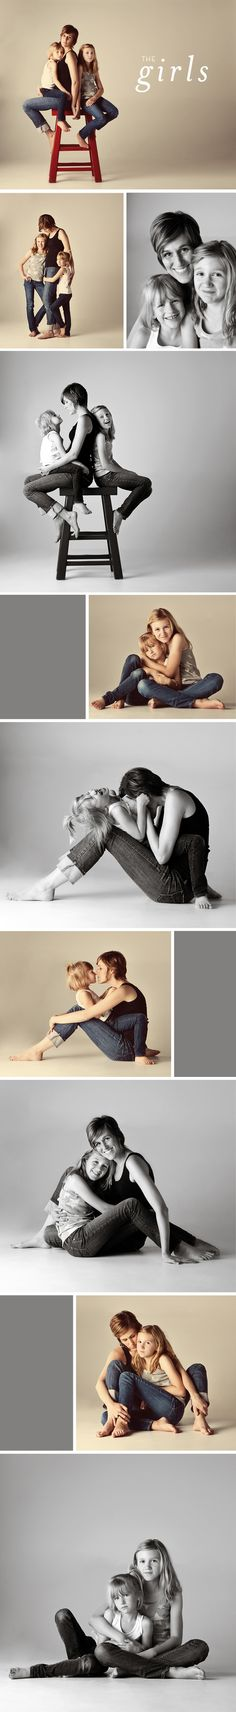 awesome mommy/daughters session.